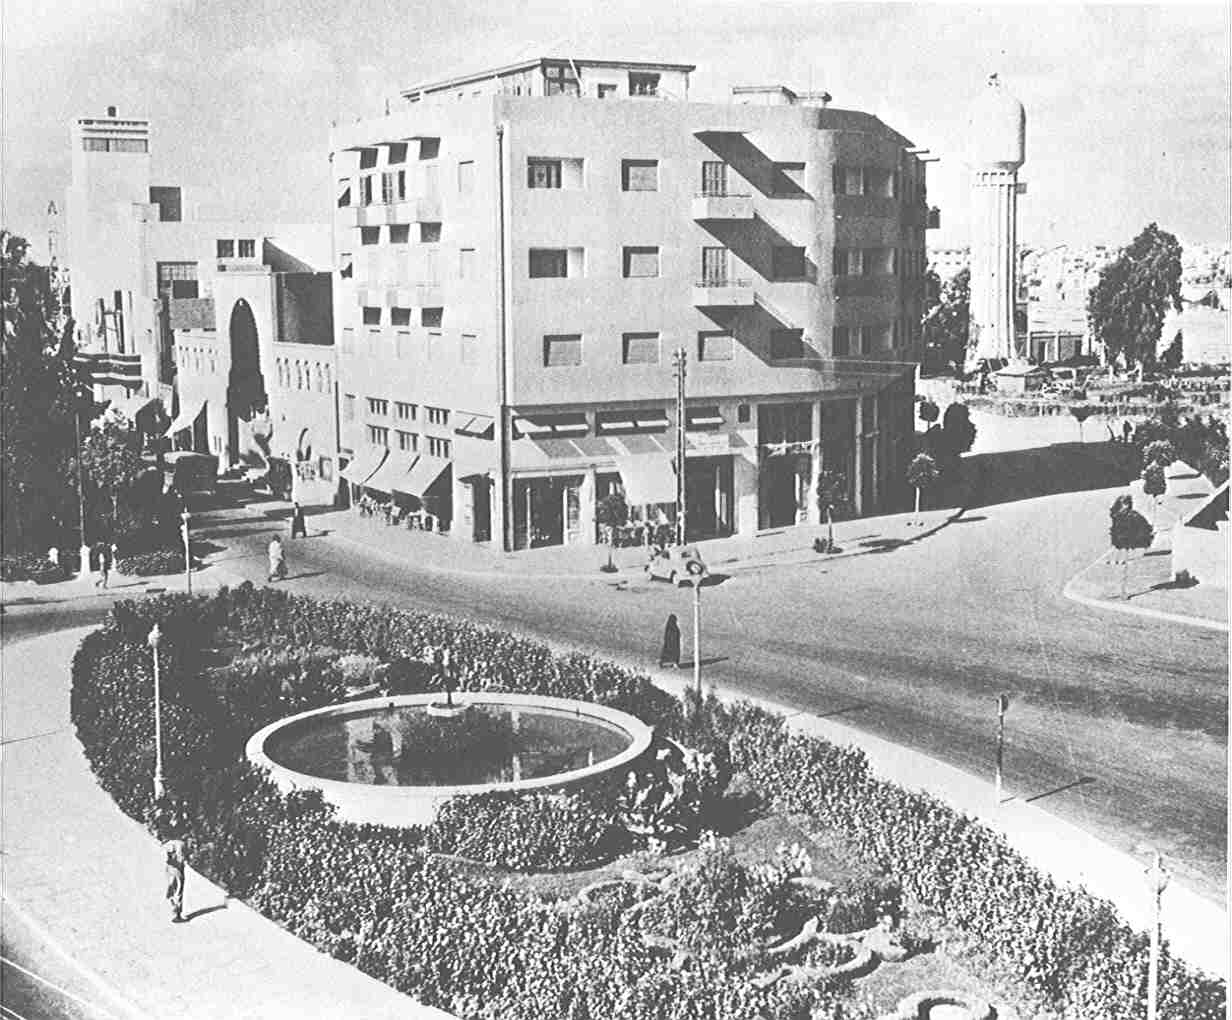 Jaffa - يافا : Jaffa's downtown in the 1940s. Note al-Hamra cinema theater on the far left, and the water tower on the right hand side. The building in the middle is the new city hall